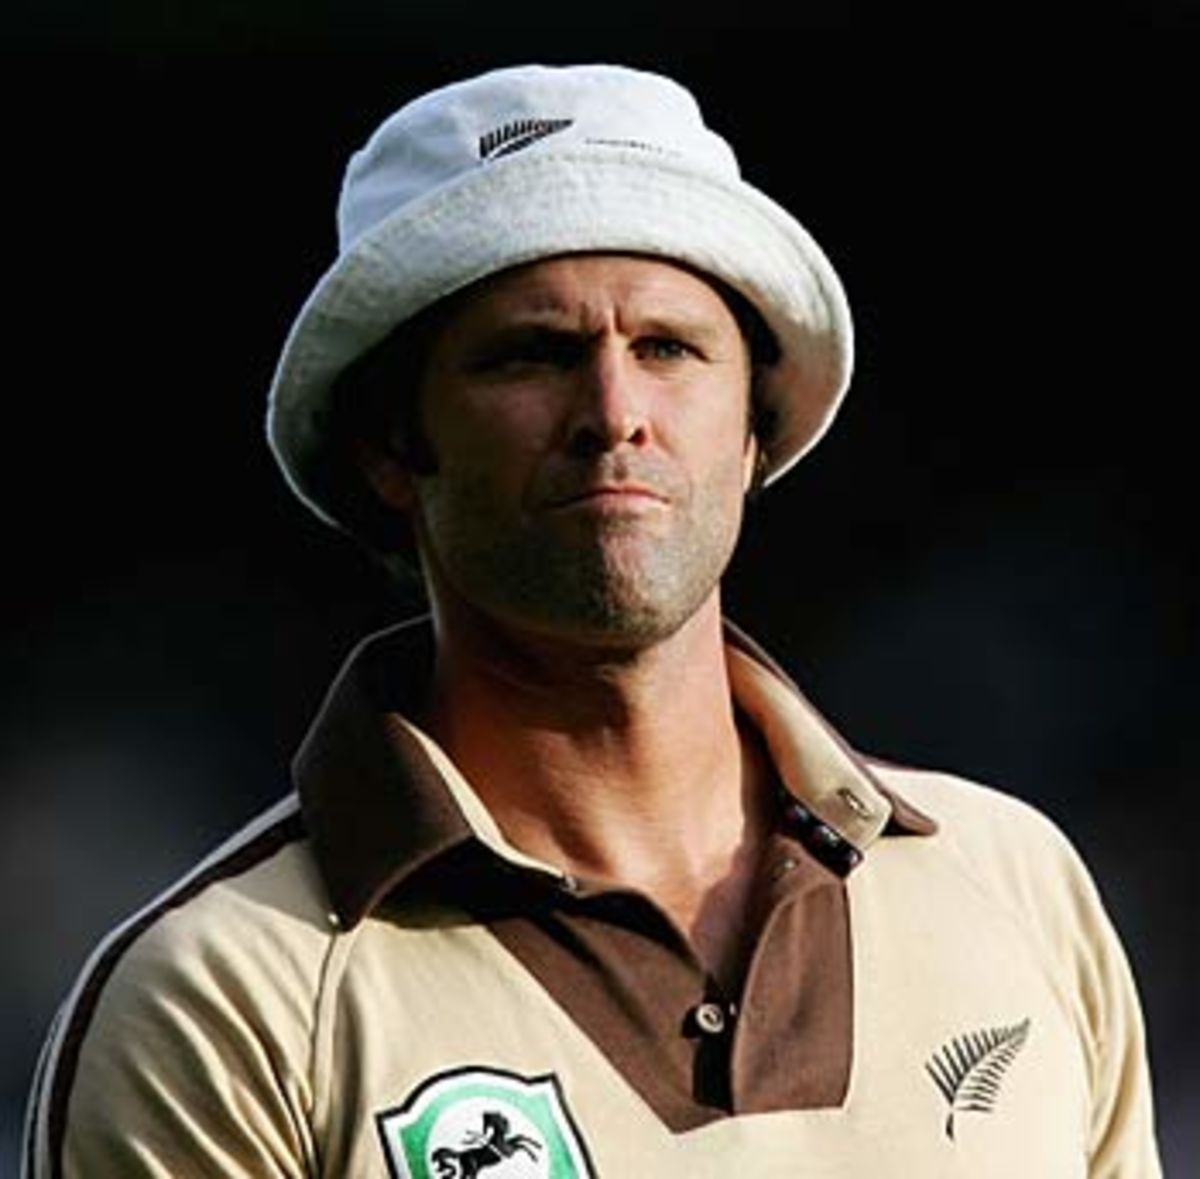 Chris Cairns during his farewell international appearance, New Zealand v West Indies, Twenty20, Auckland, February 16, 2006, @AFP